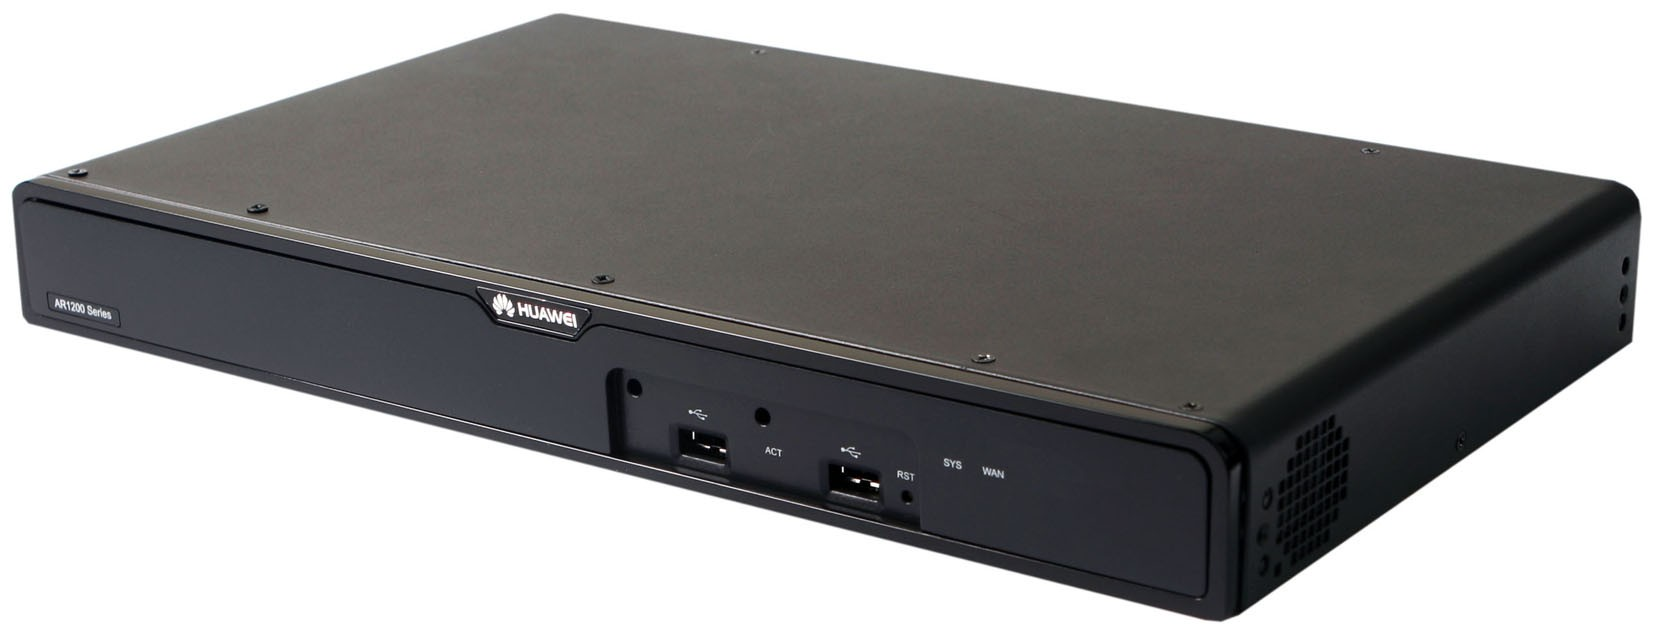 Router Huawei AR1220V